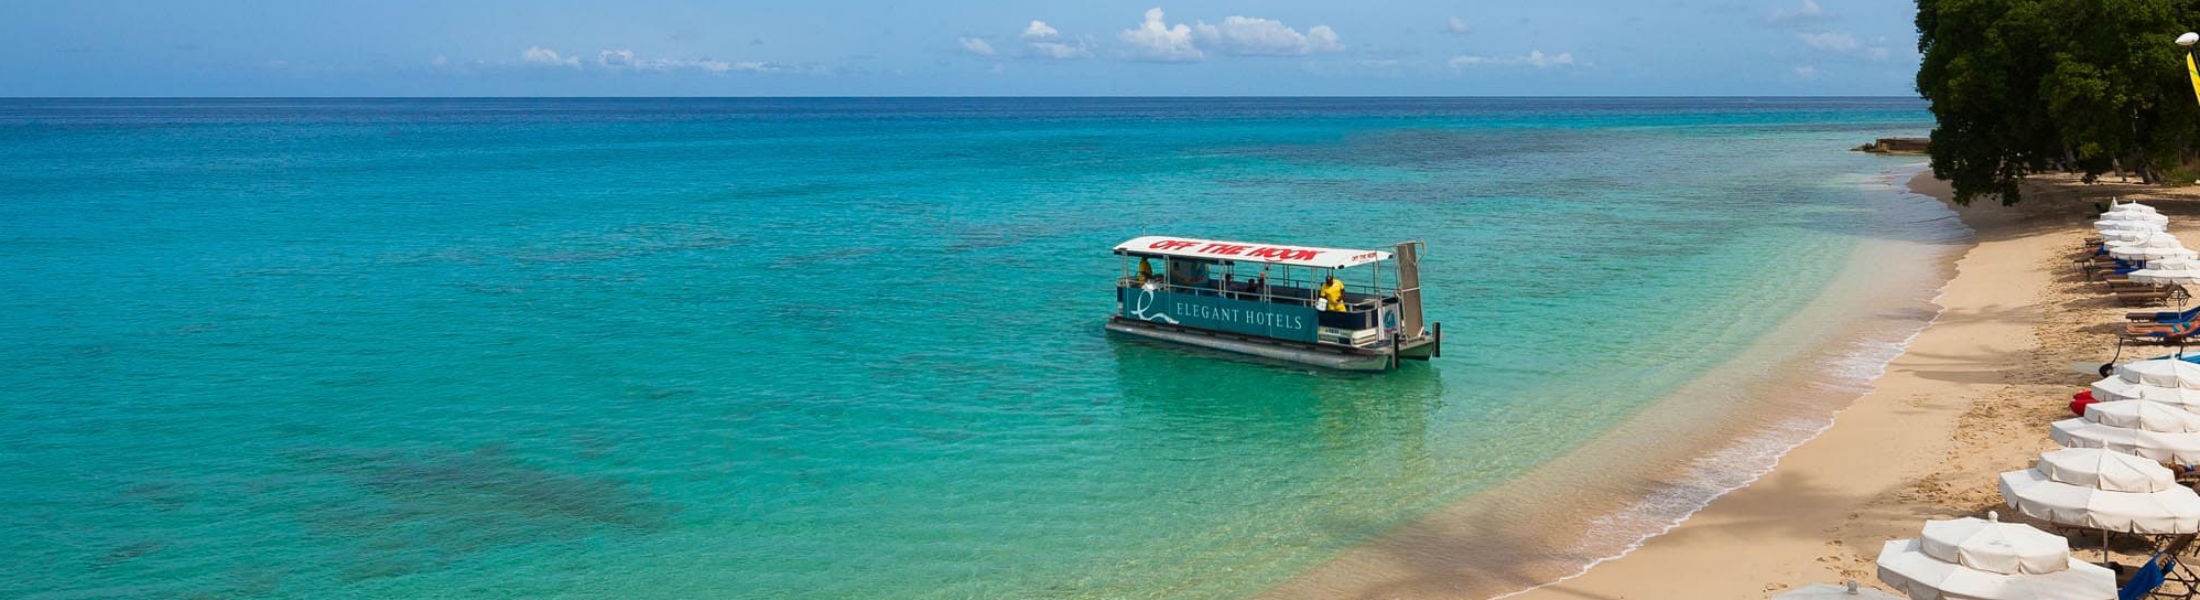 Elegant water taxi at the Waves Hotel & Spa by Elegant Hotels